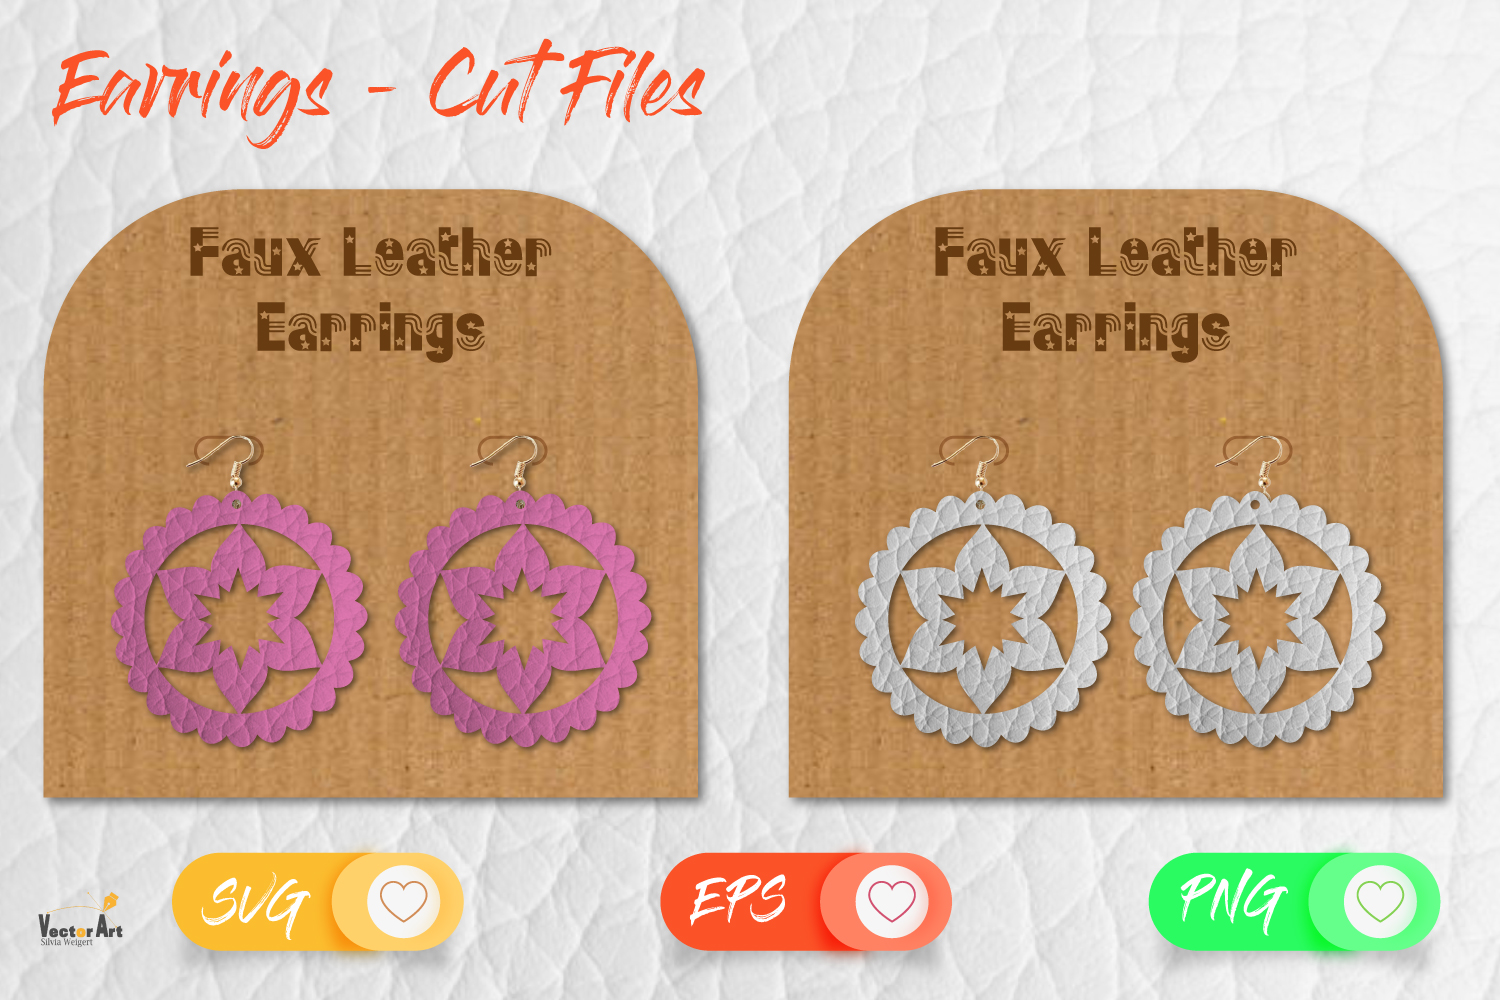 5 Earrings - Mini Bundle - Cut files example image 10